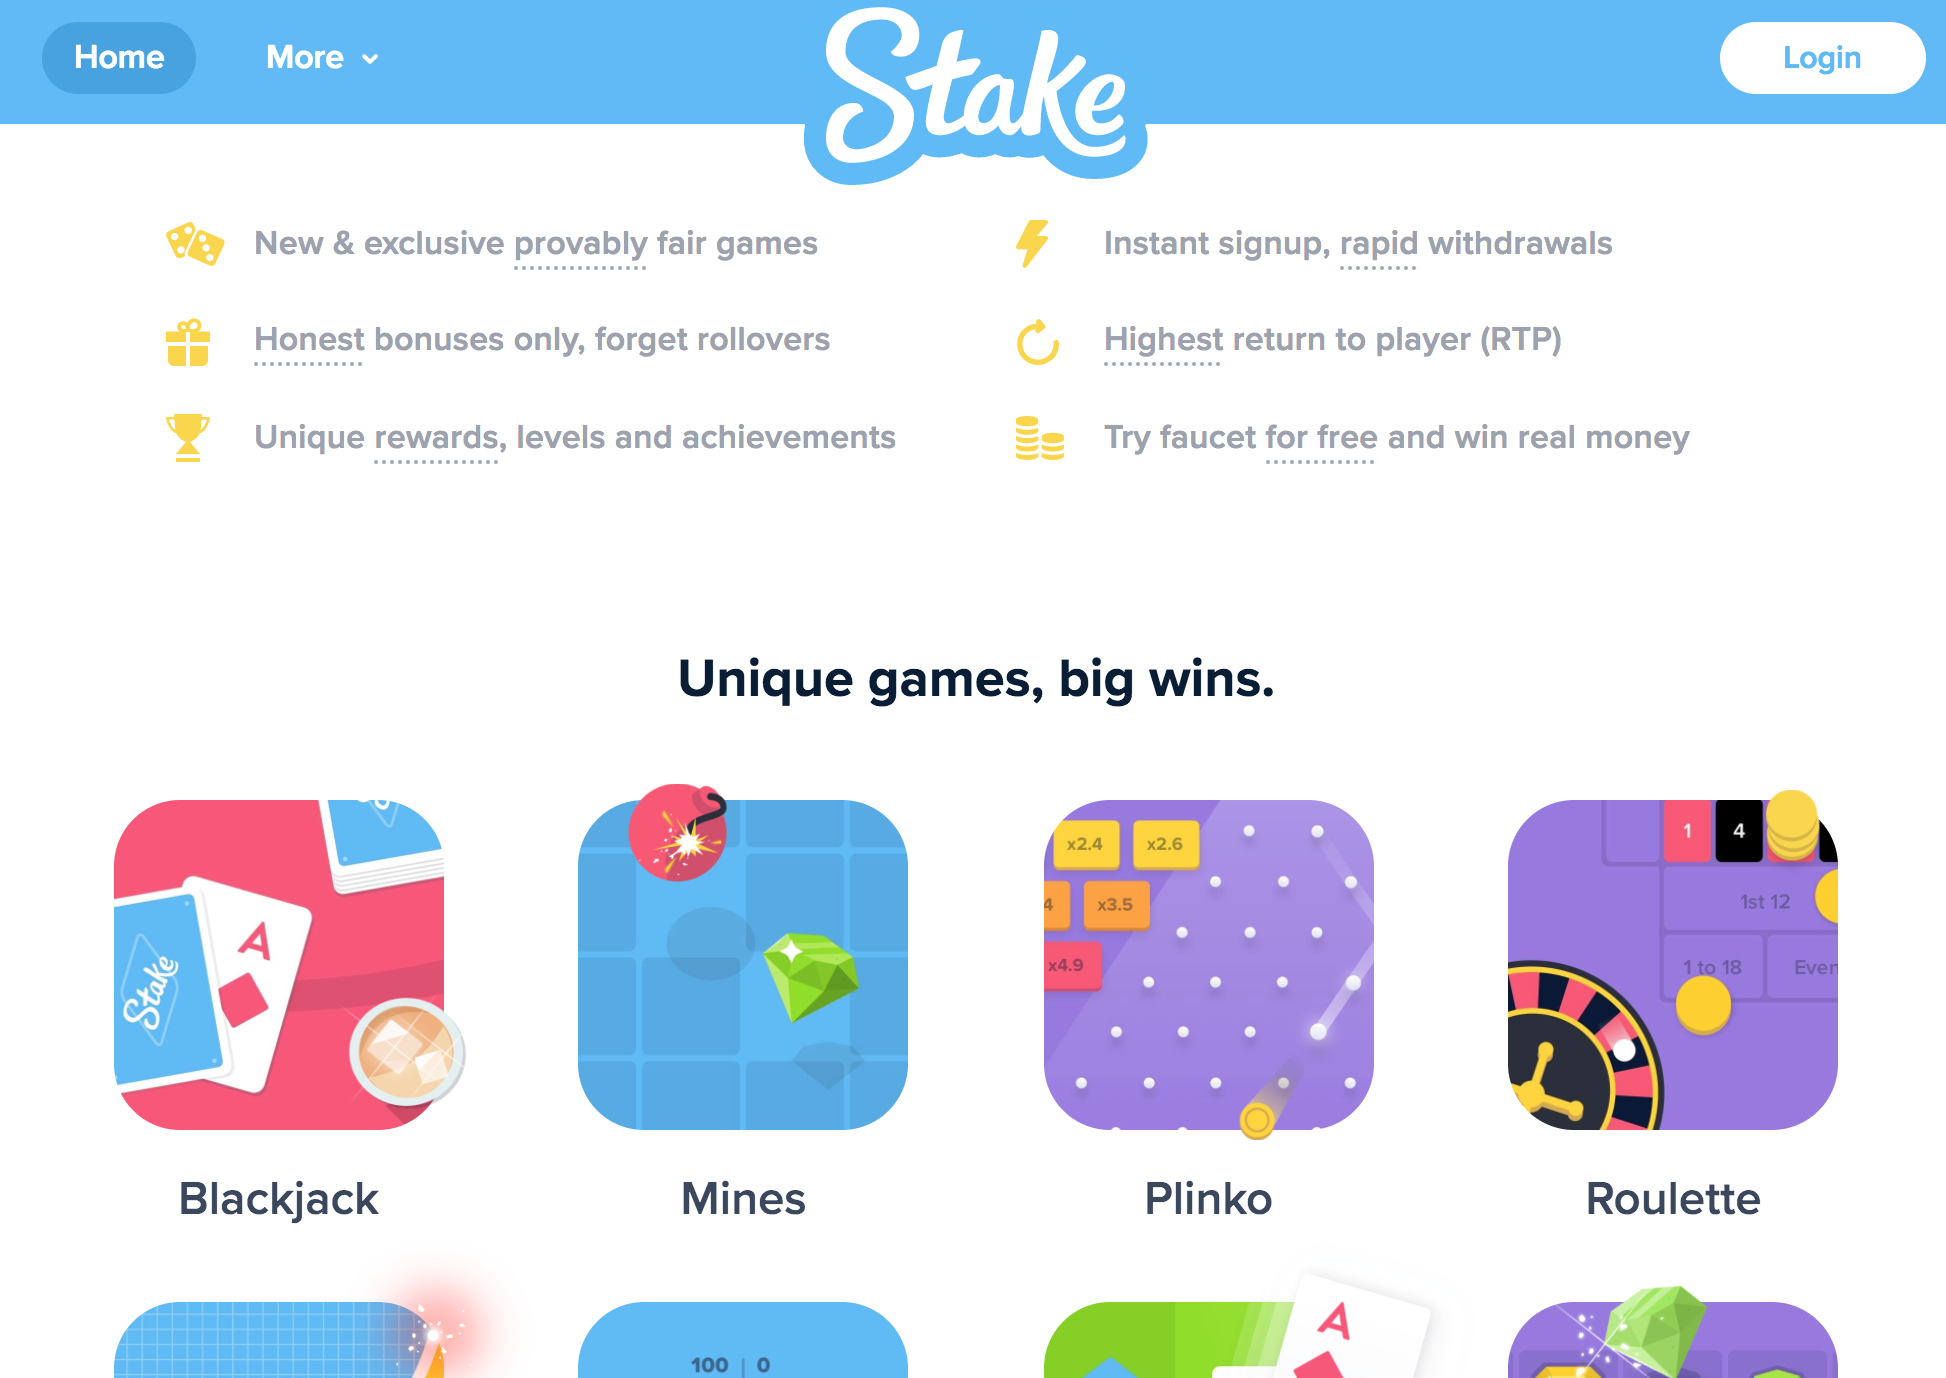 Stake home page and games to choose from